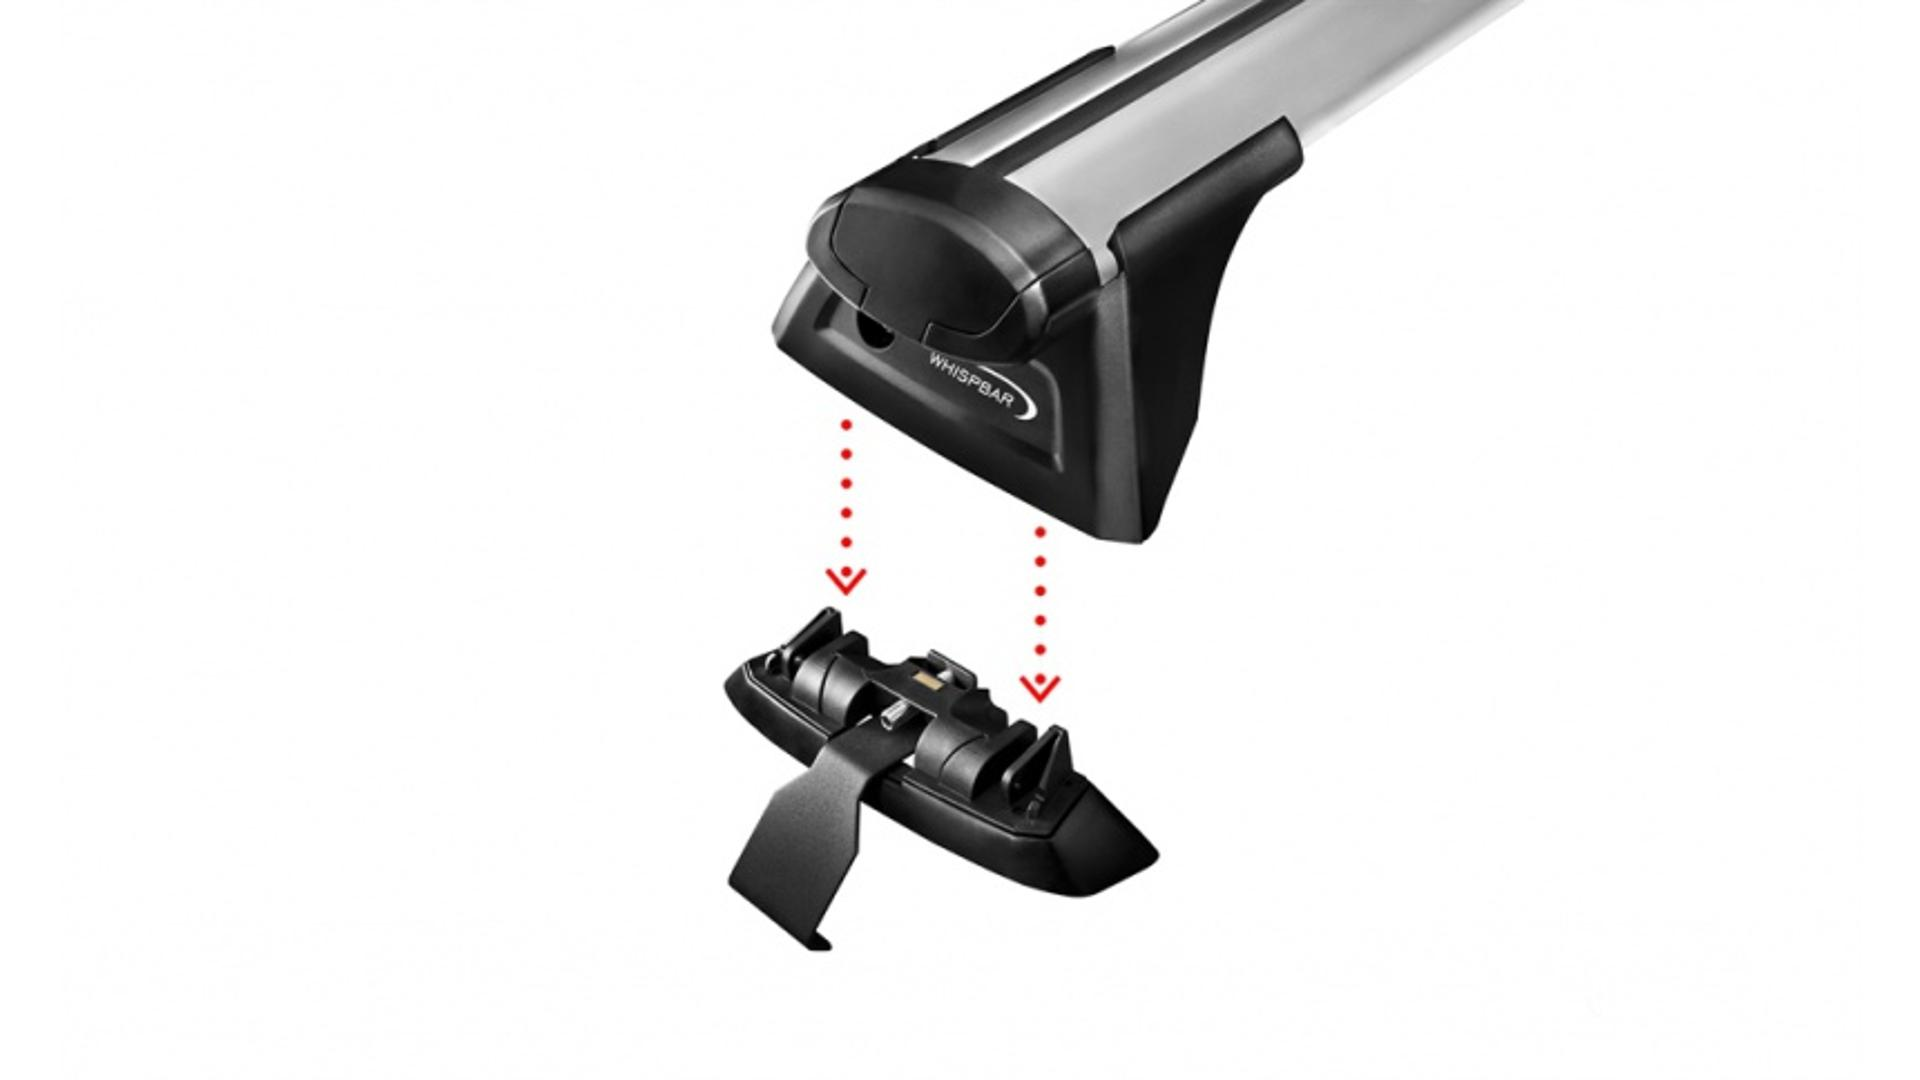 Whispbar montážní sada - Clamp Mount - K778W